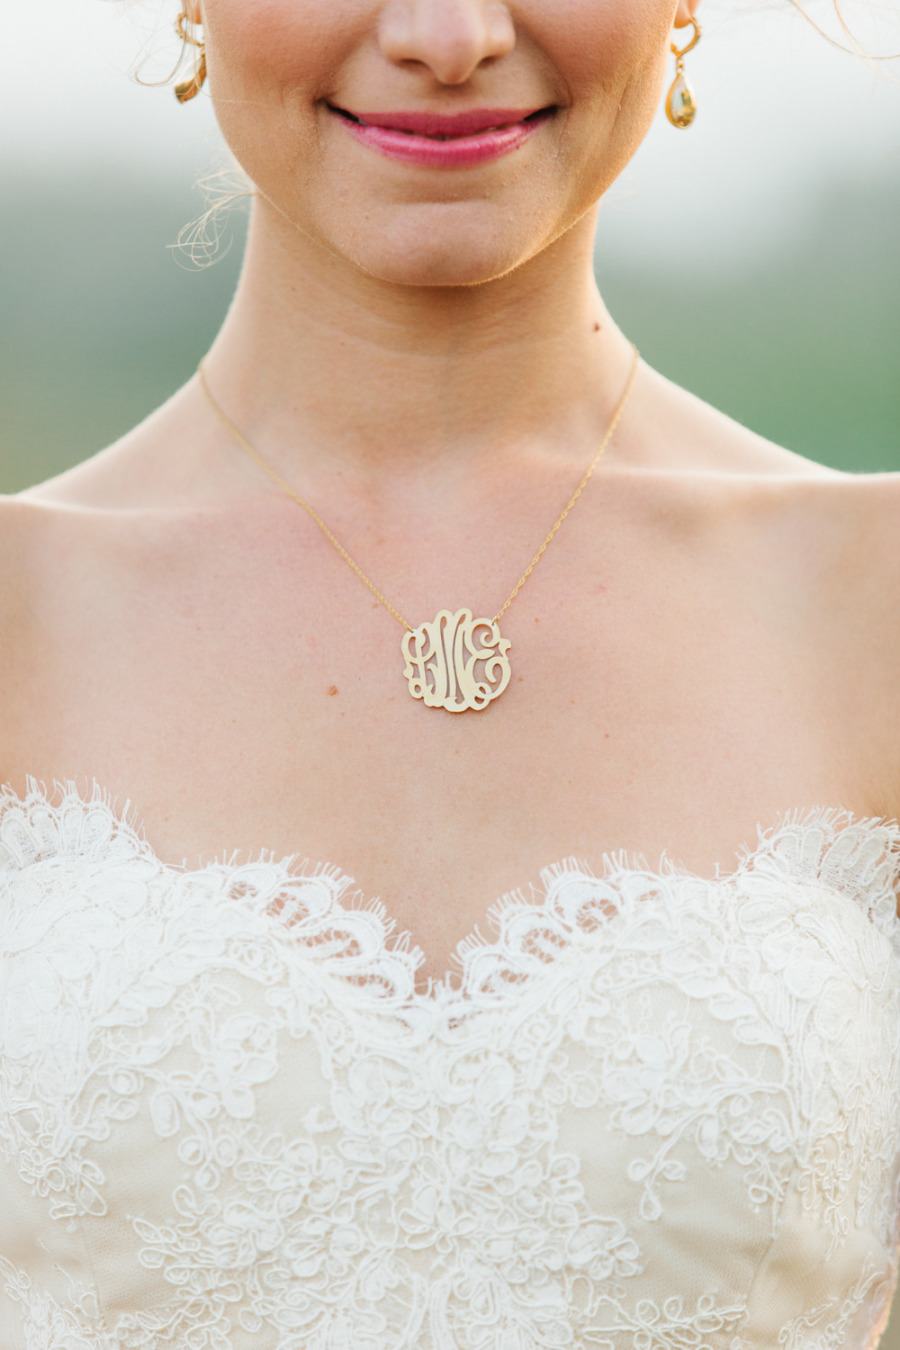 Show off your monogram